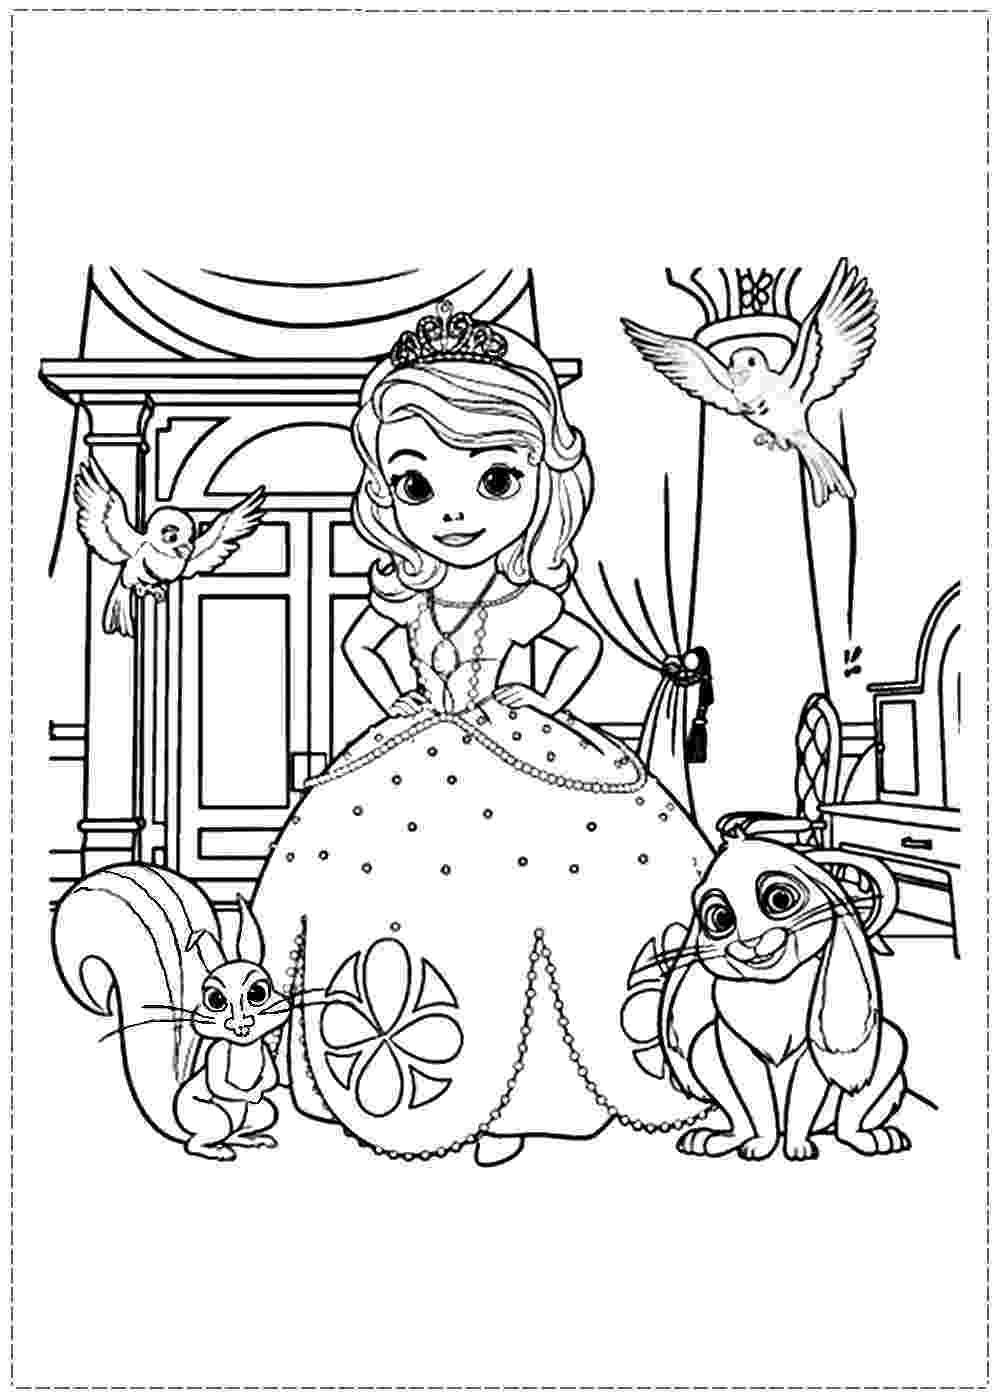 sofia the first coloring sofia the first printable coloring pages templates the coloring sofia first